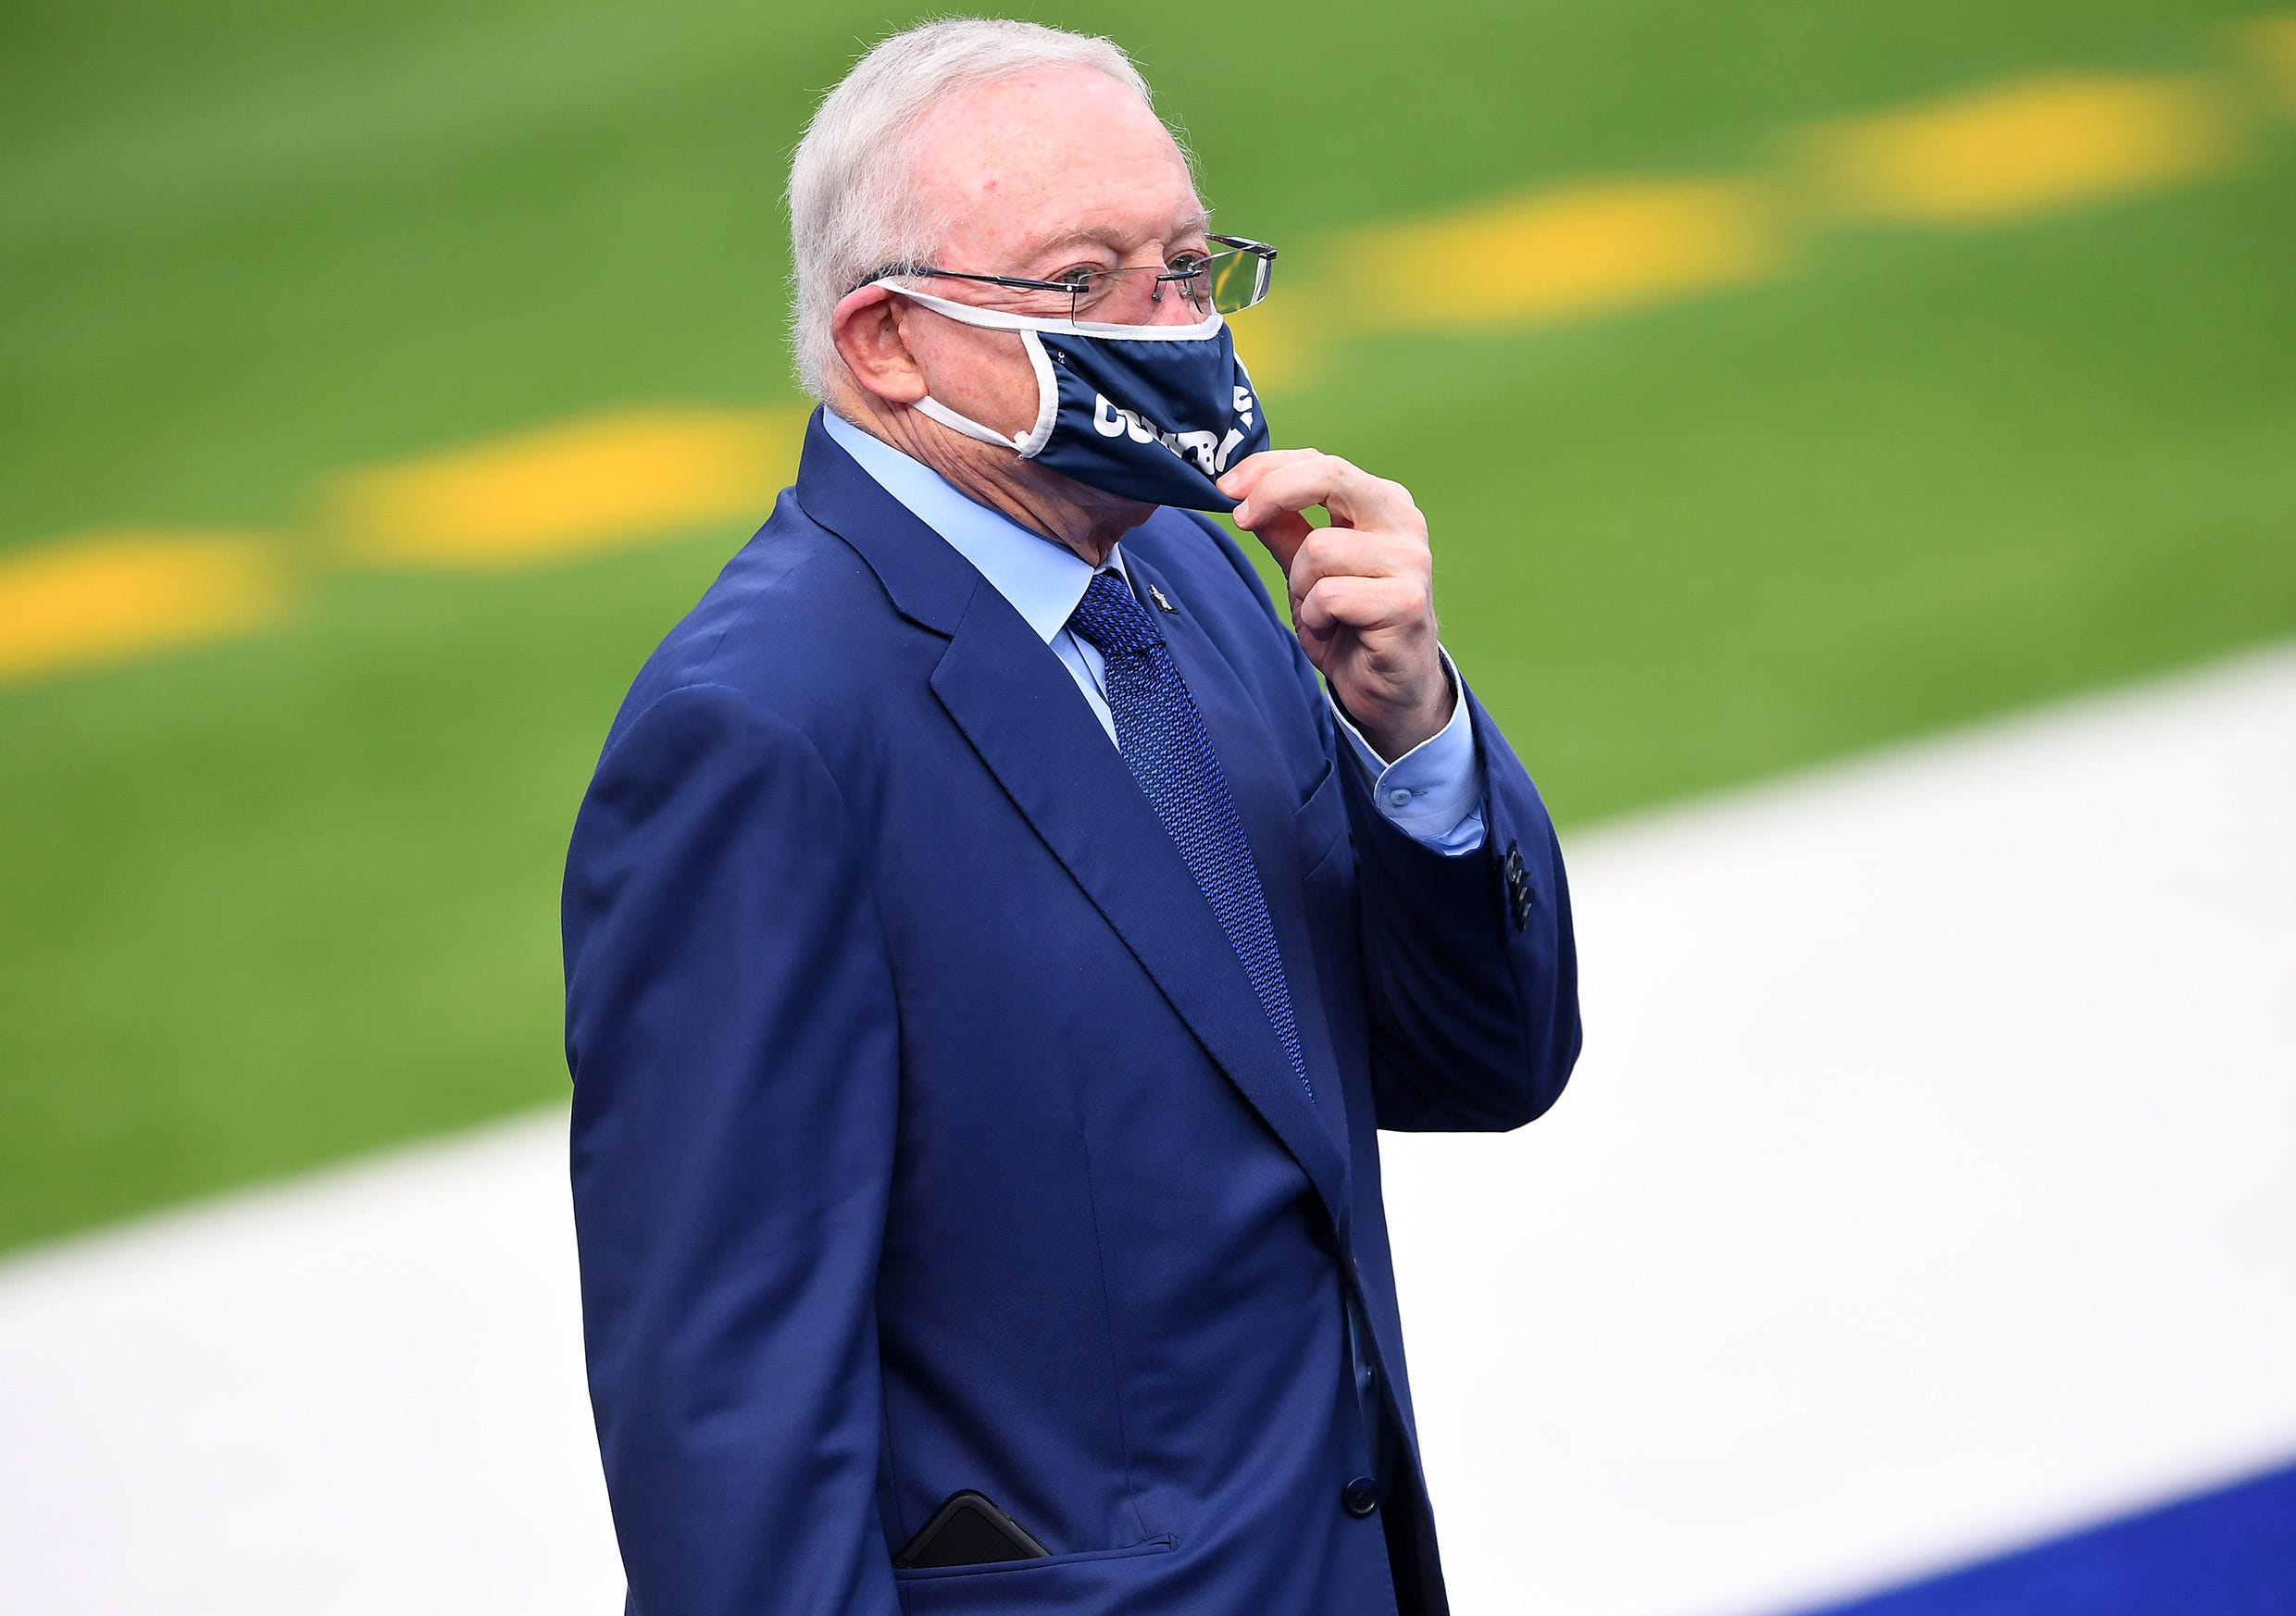 Cowboys owner Jerry Jones says he ll  absolutely  get COVID-19 vaccine once eligible